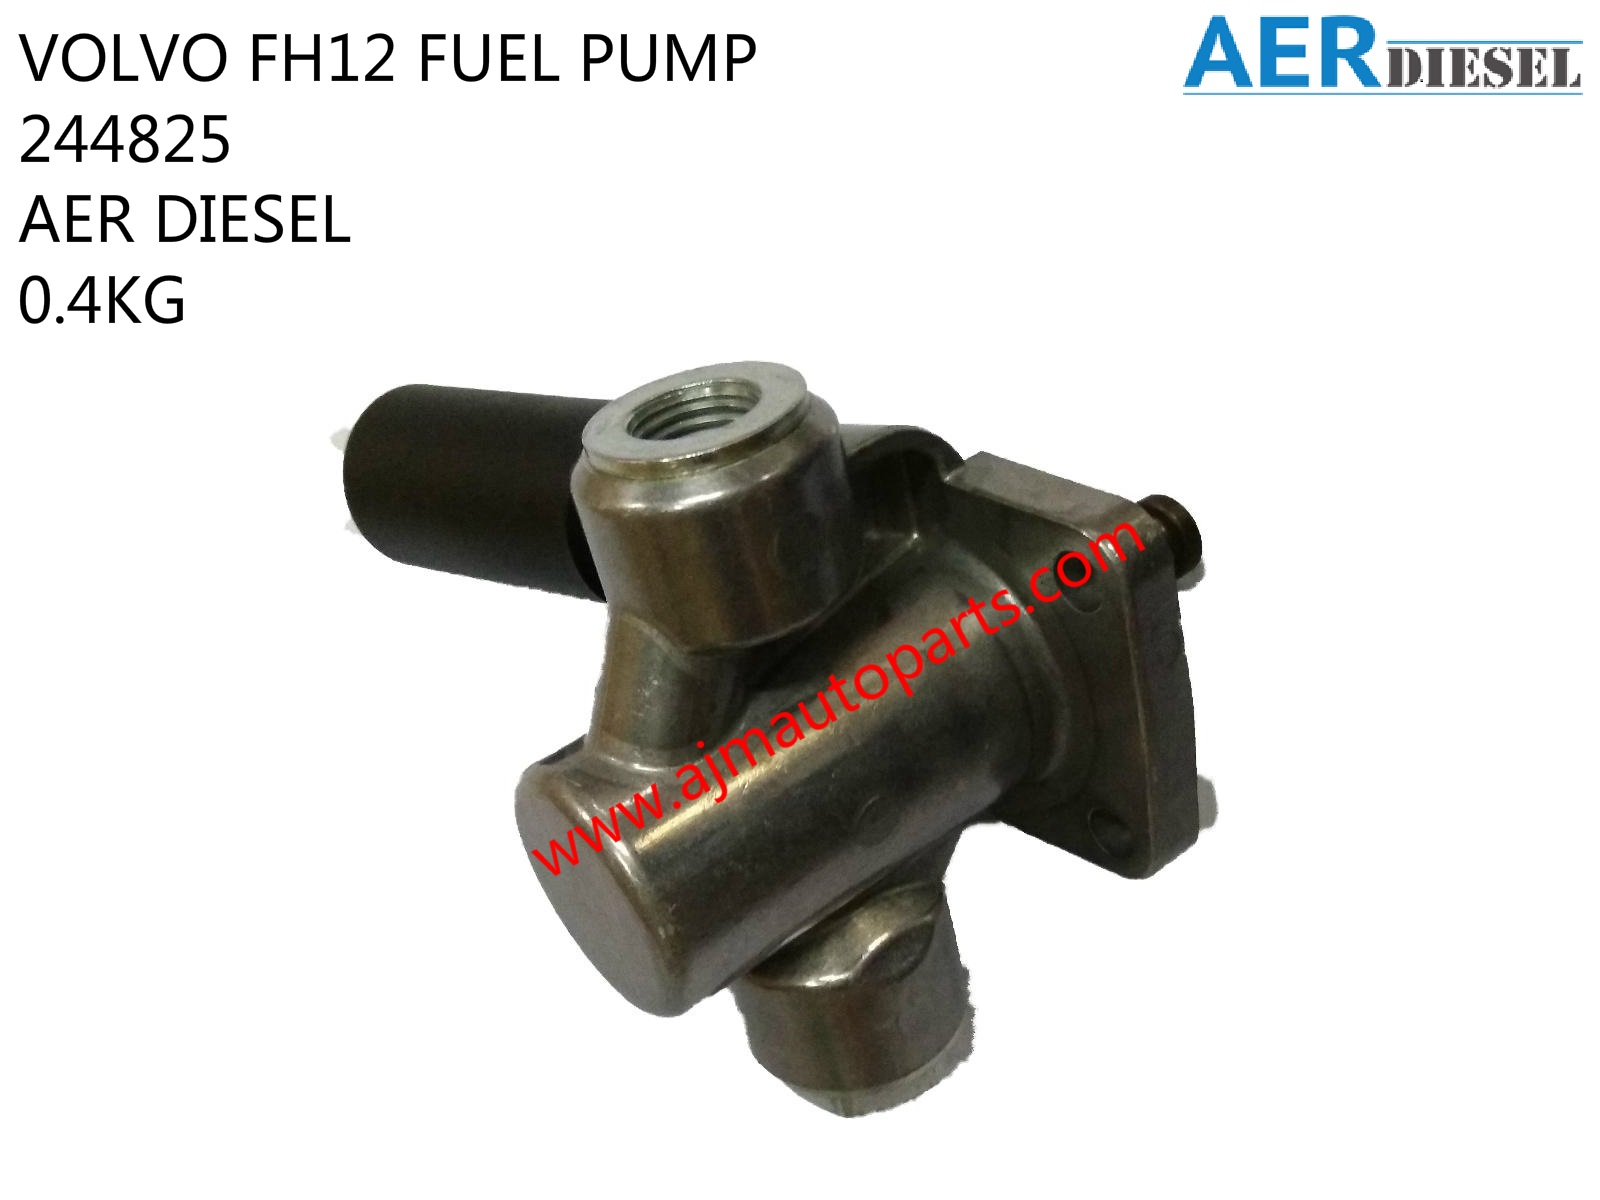 VOLVO FH12 FUEL PUMP-244825